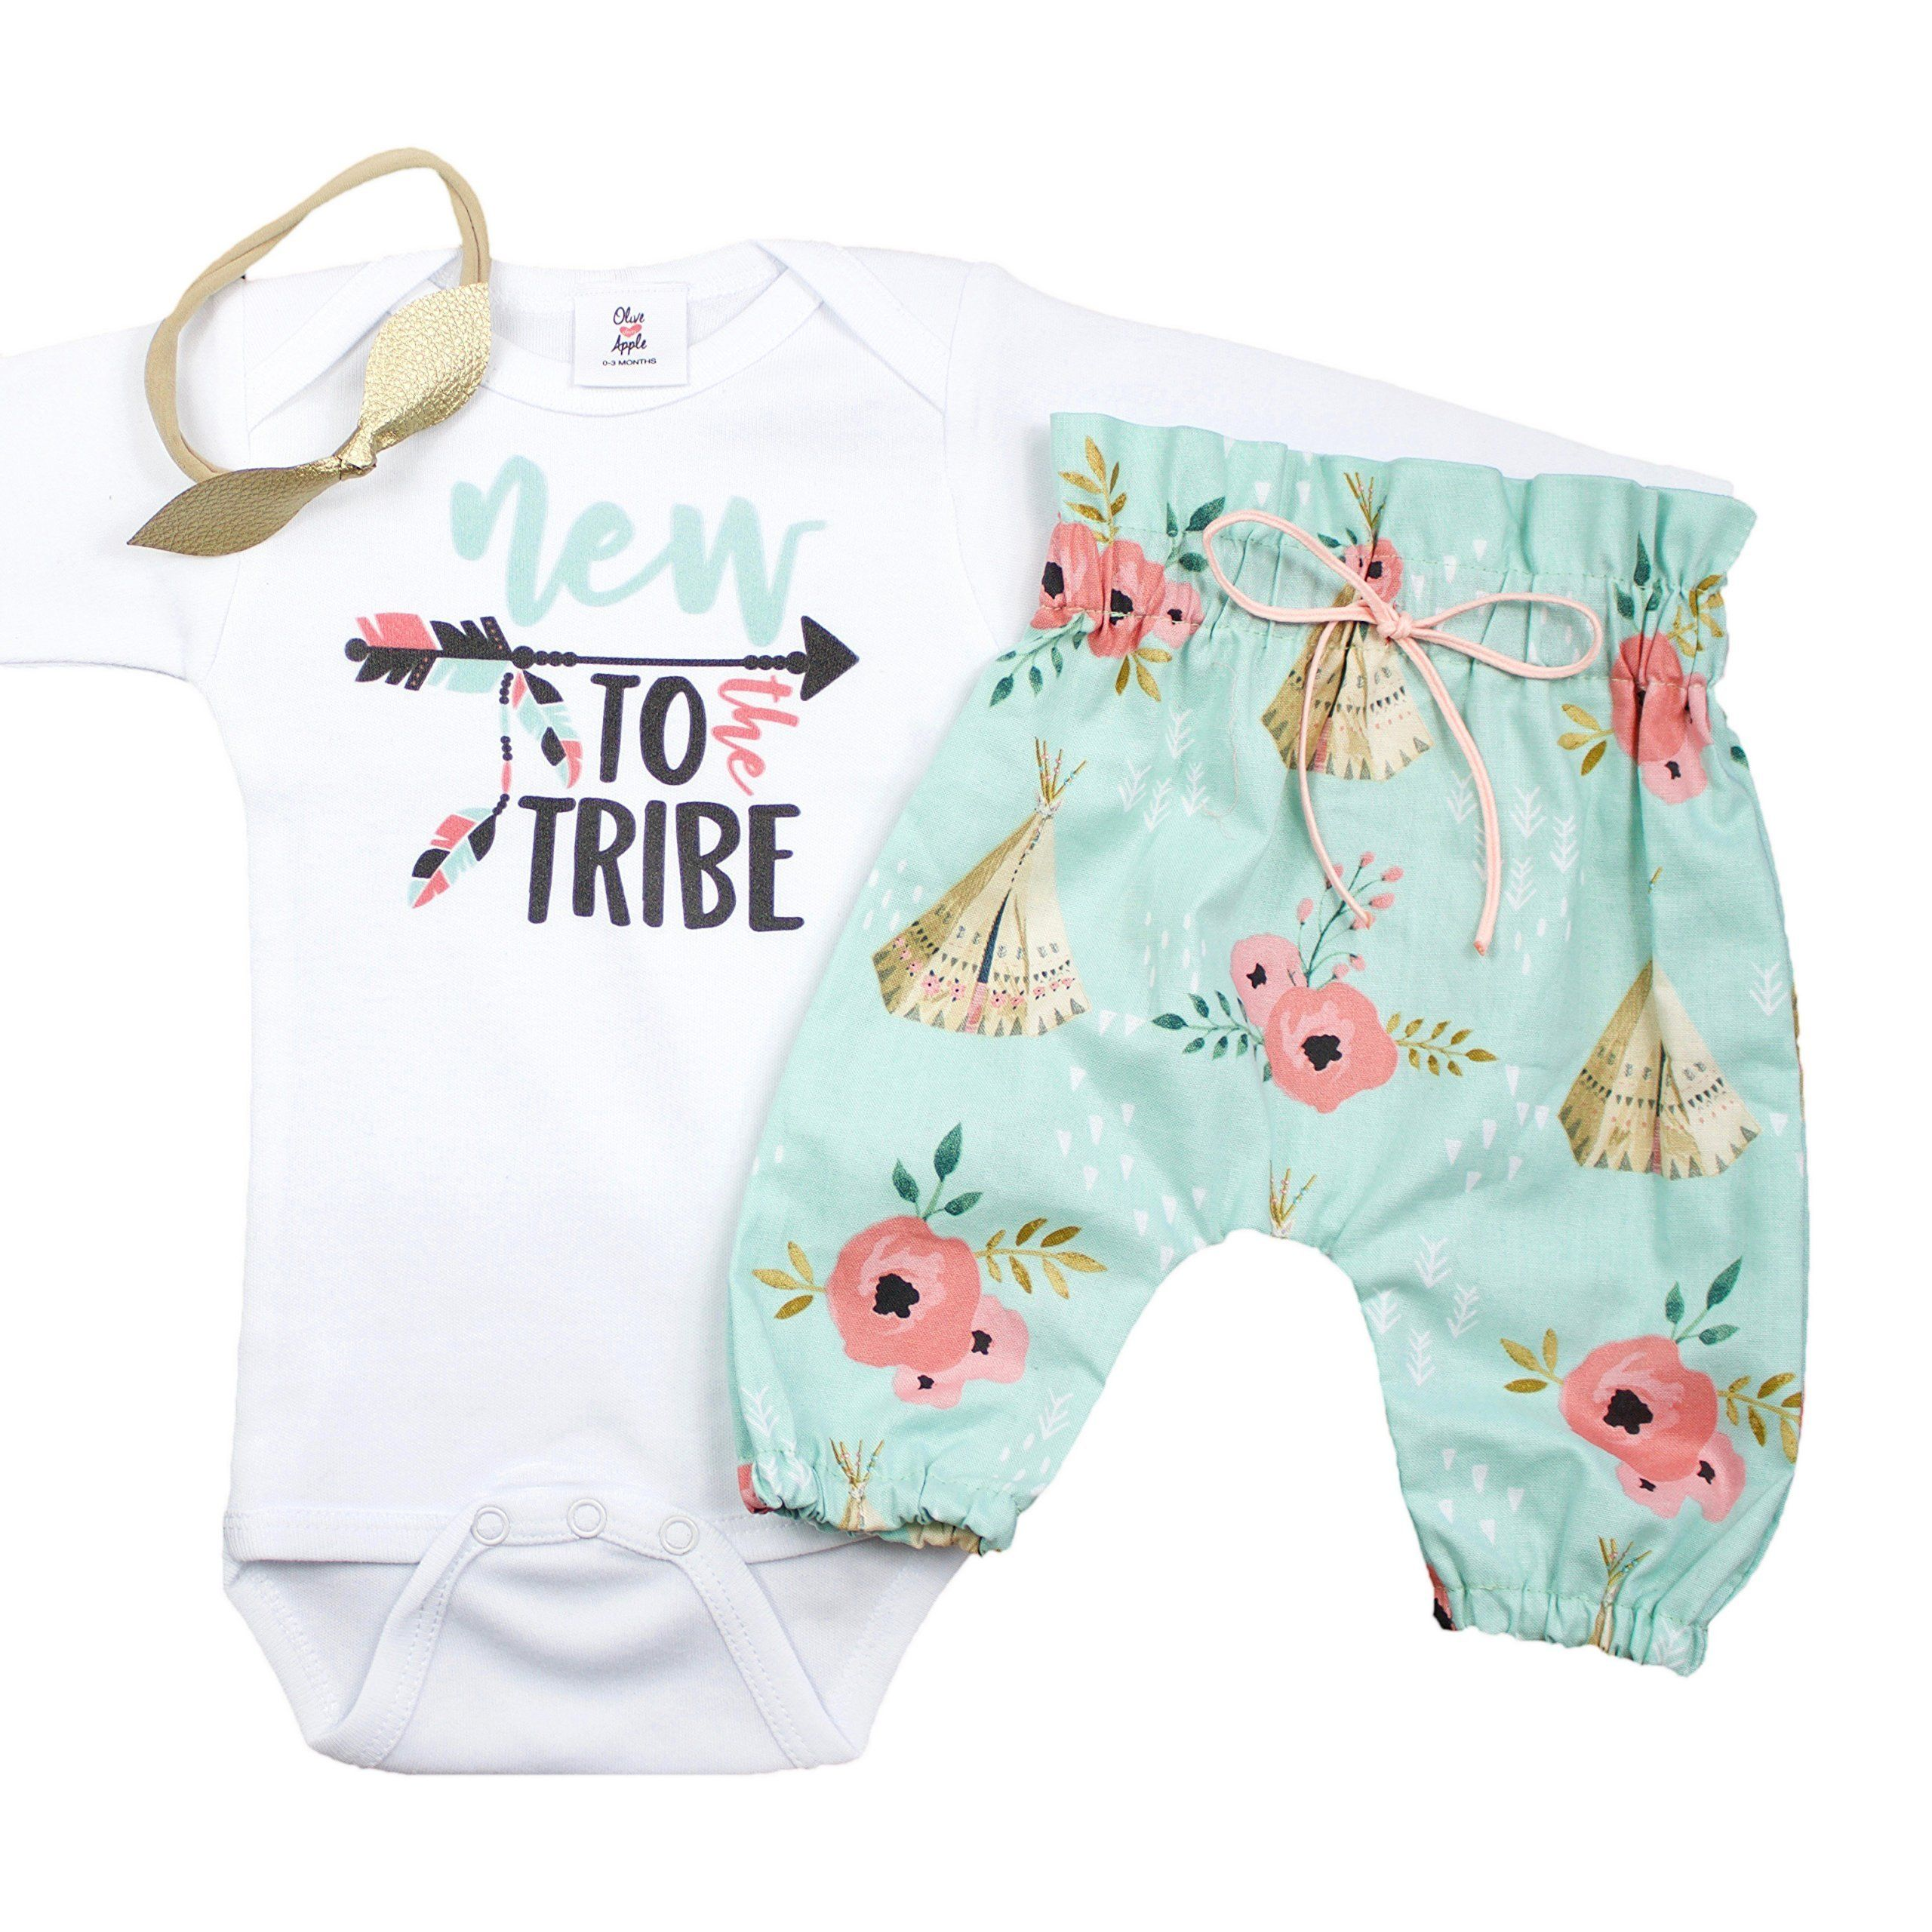 3 piece set Newborn baby girl outfit coming home baby girl clothes